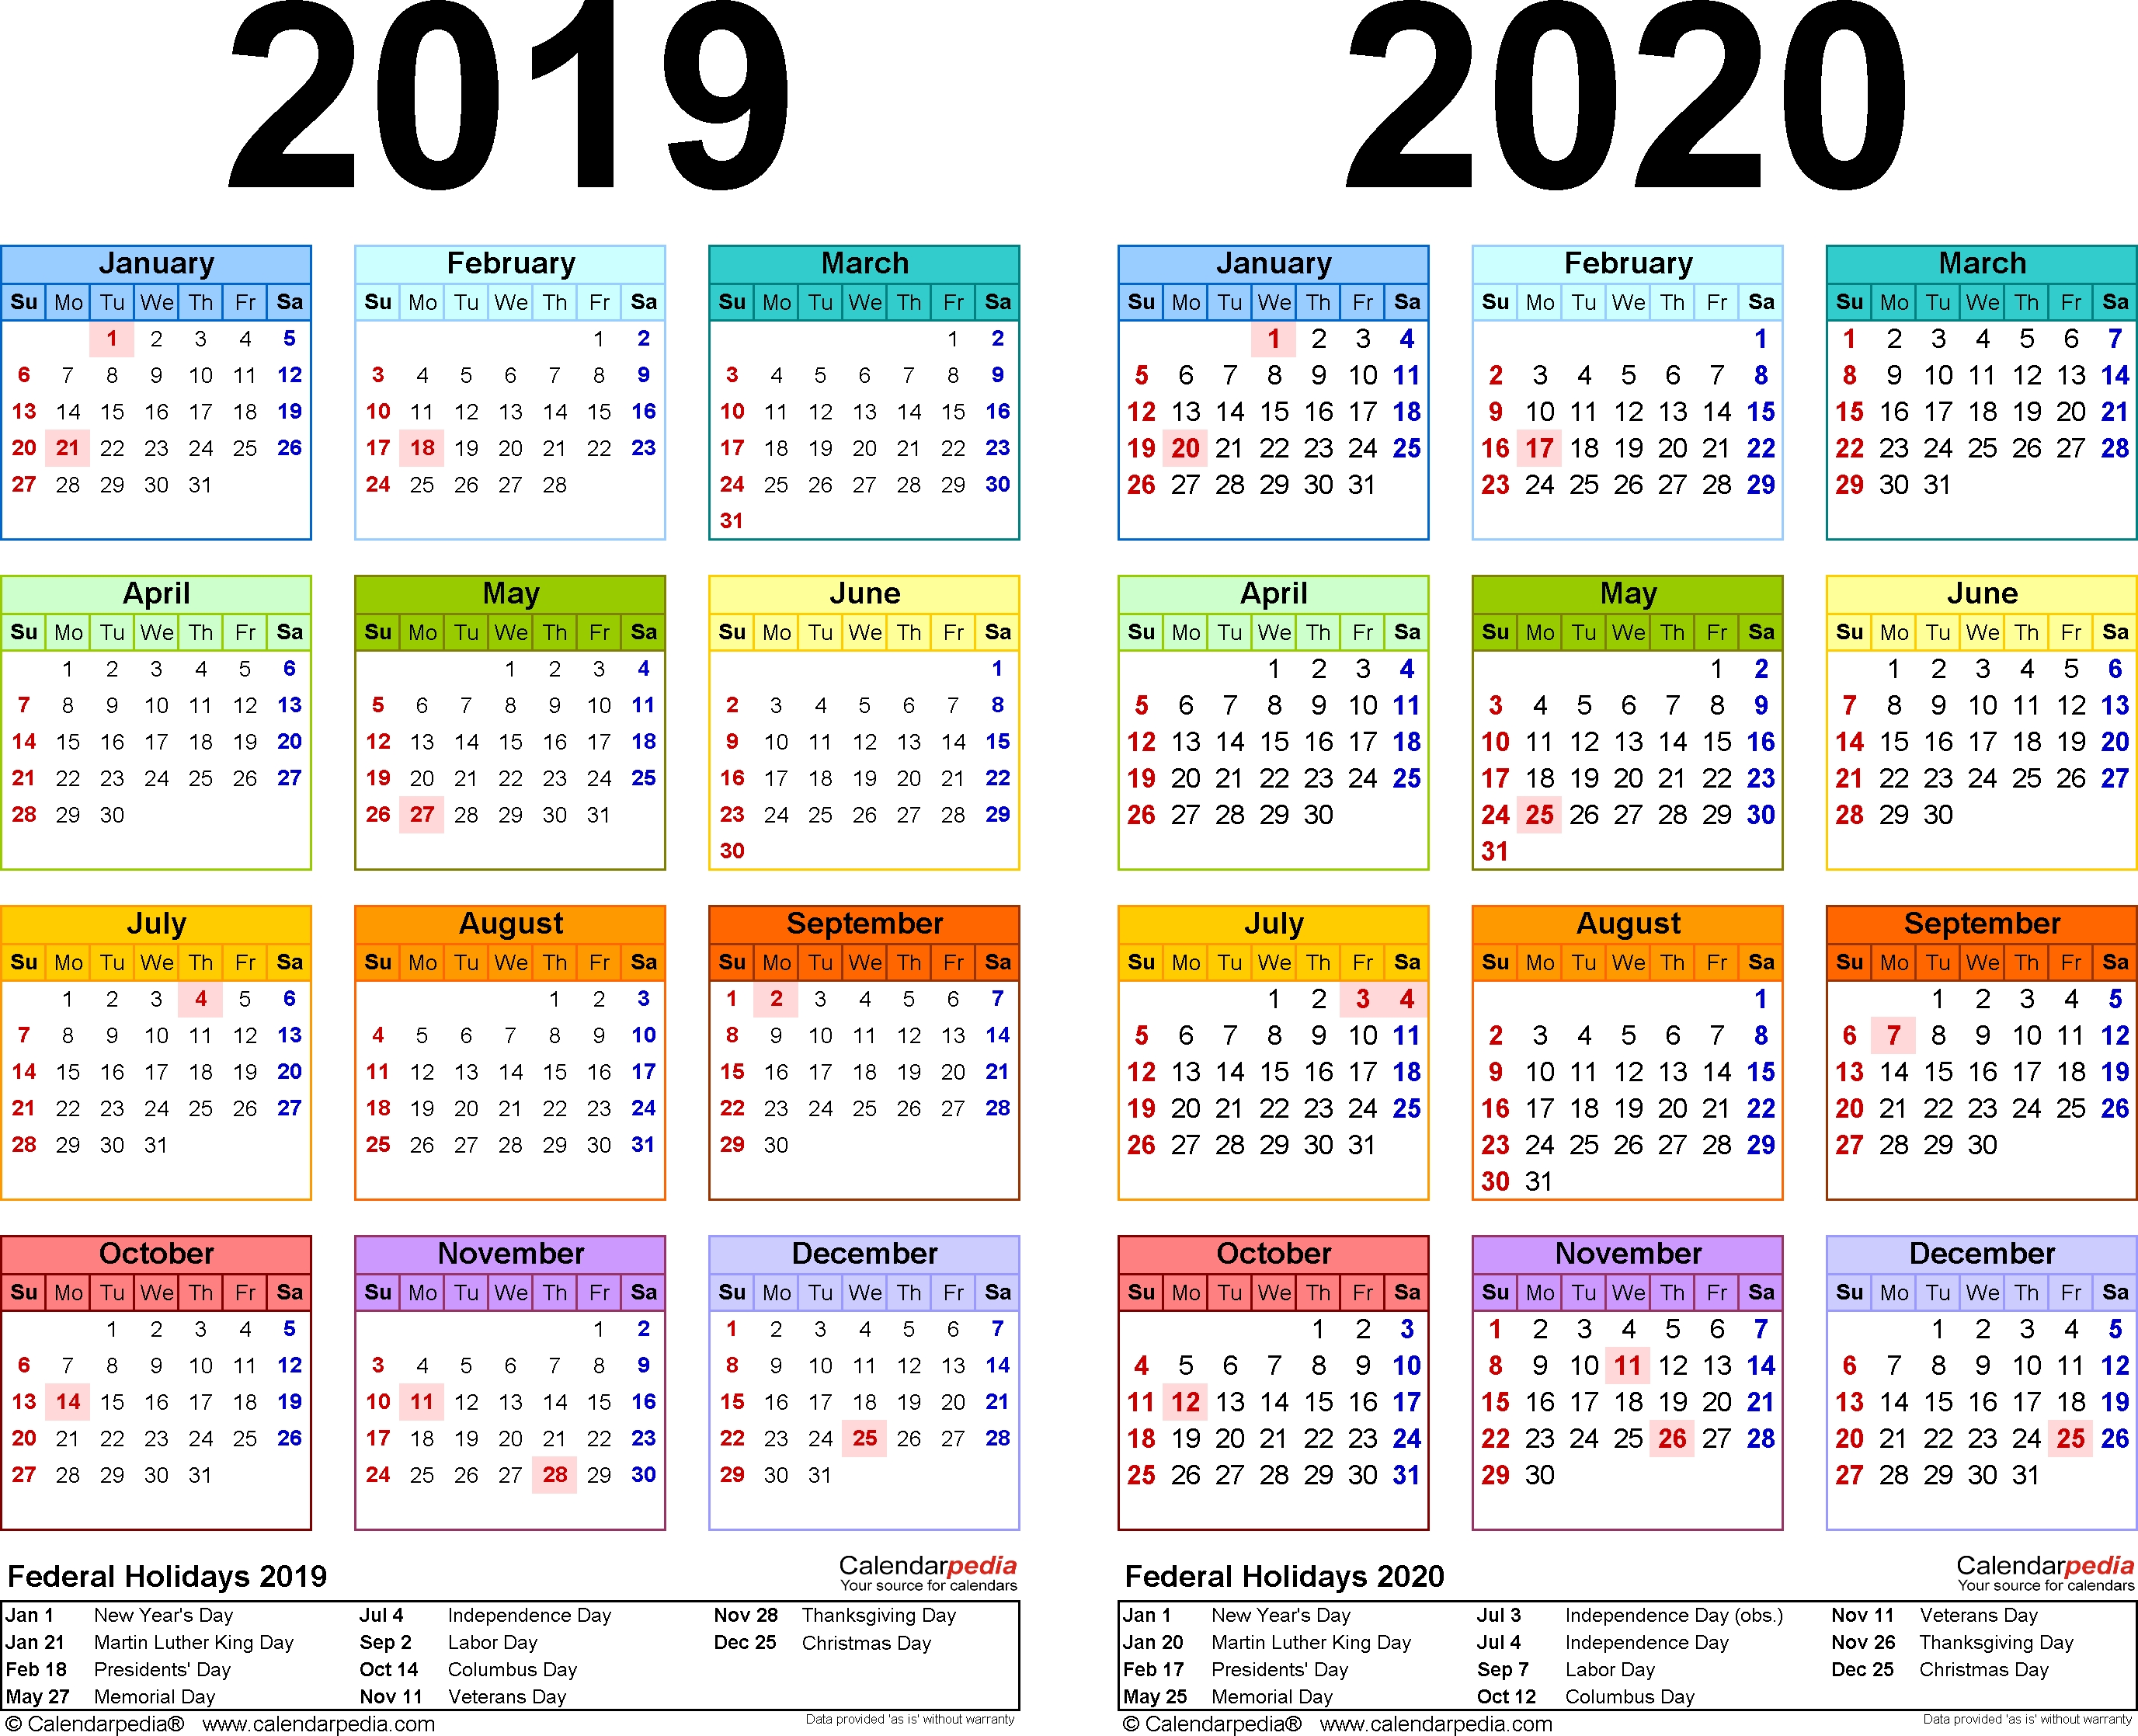 2019-2020 Calendar - Free Printable Two-Year Word Calendars with regard to 2019 2020 Calendar Fillabel Printable